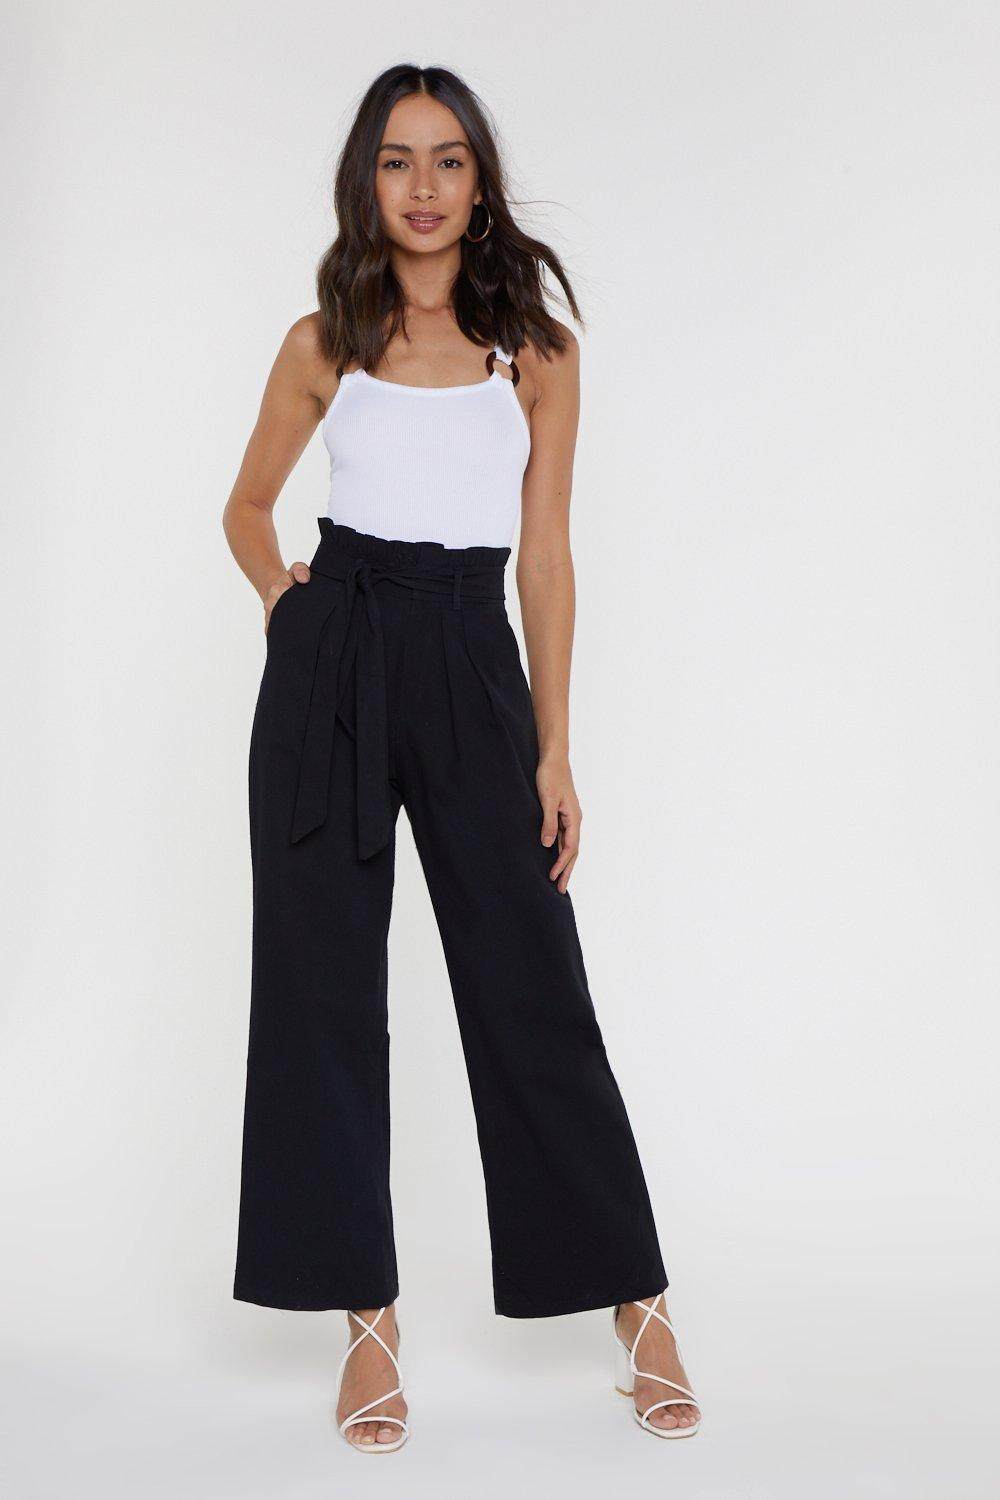 91ef691e99ede8 Carry It Off Paperbag High-Waisted Pants | Shop Clothes at Nasty Gal!